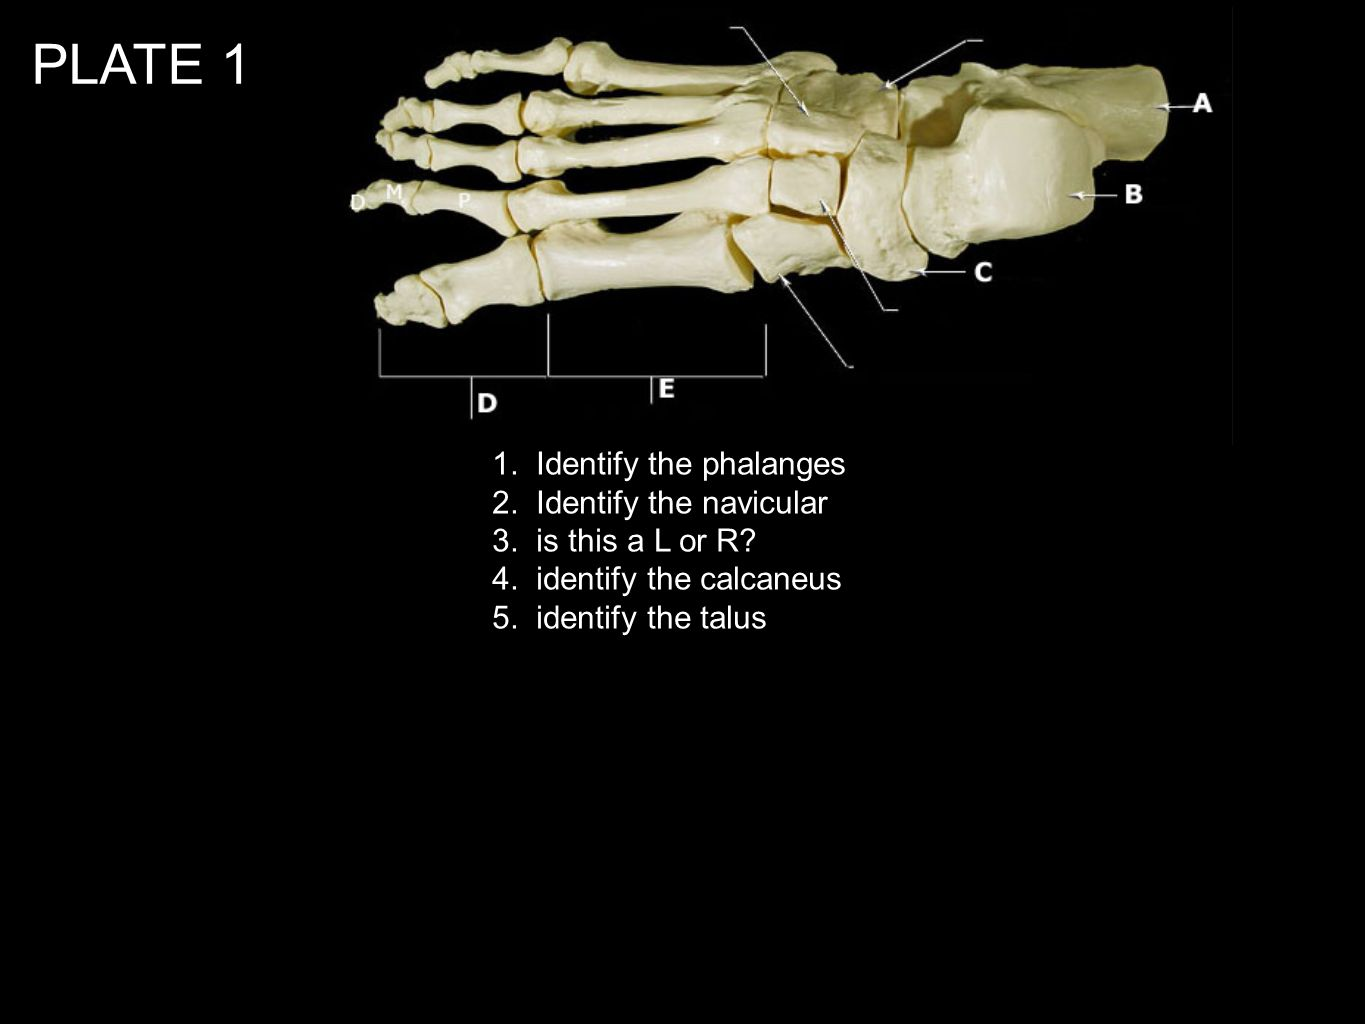 PLATE 1 1. Identify the phalanges 2. Identify the navicular